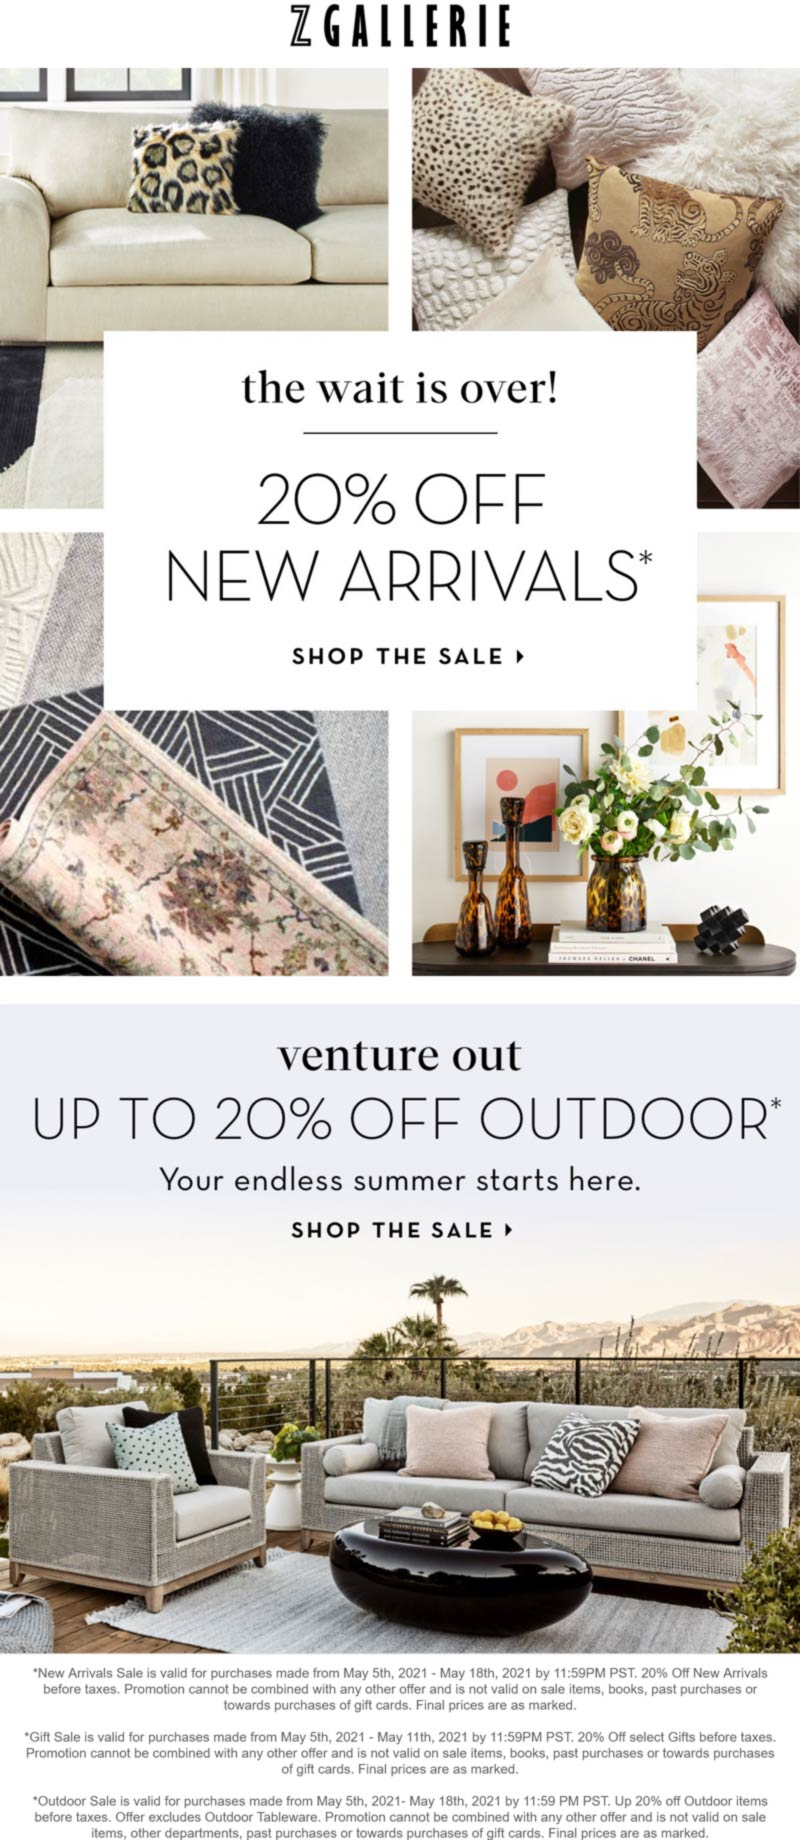 Z Gallerie stores Coupon  20% off new furniture arrivals at Z Gallerie #zgallerie